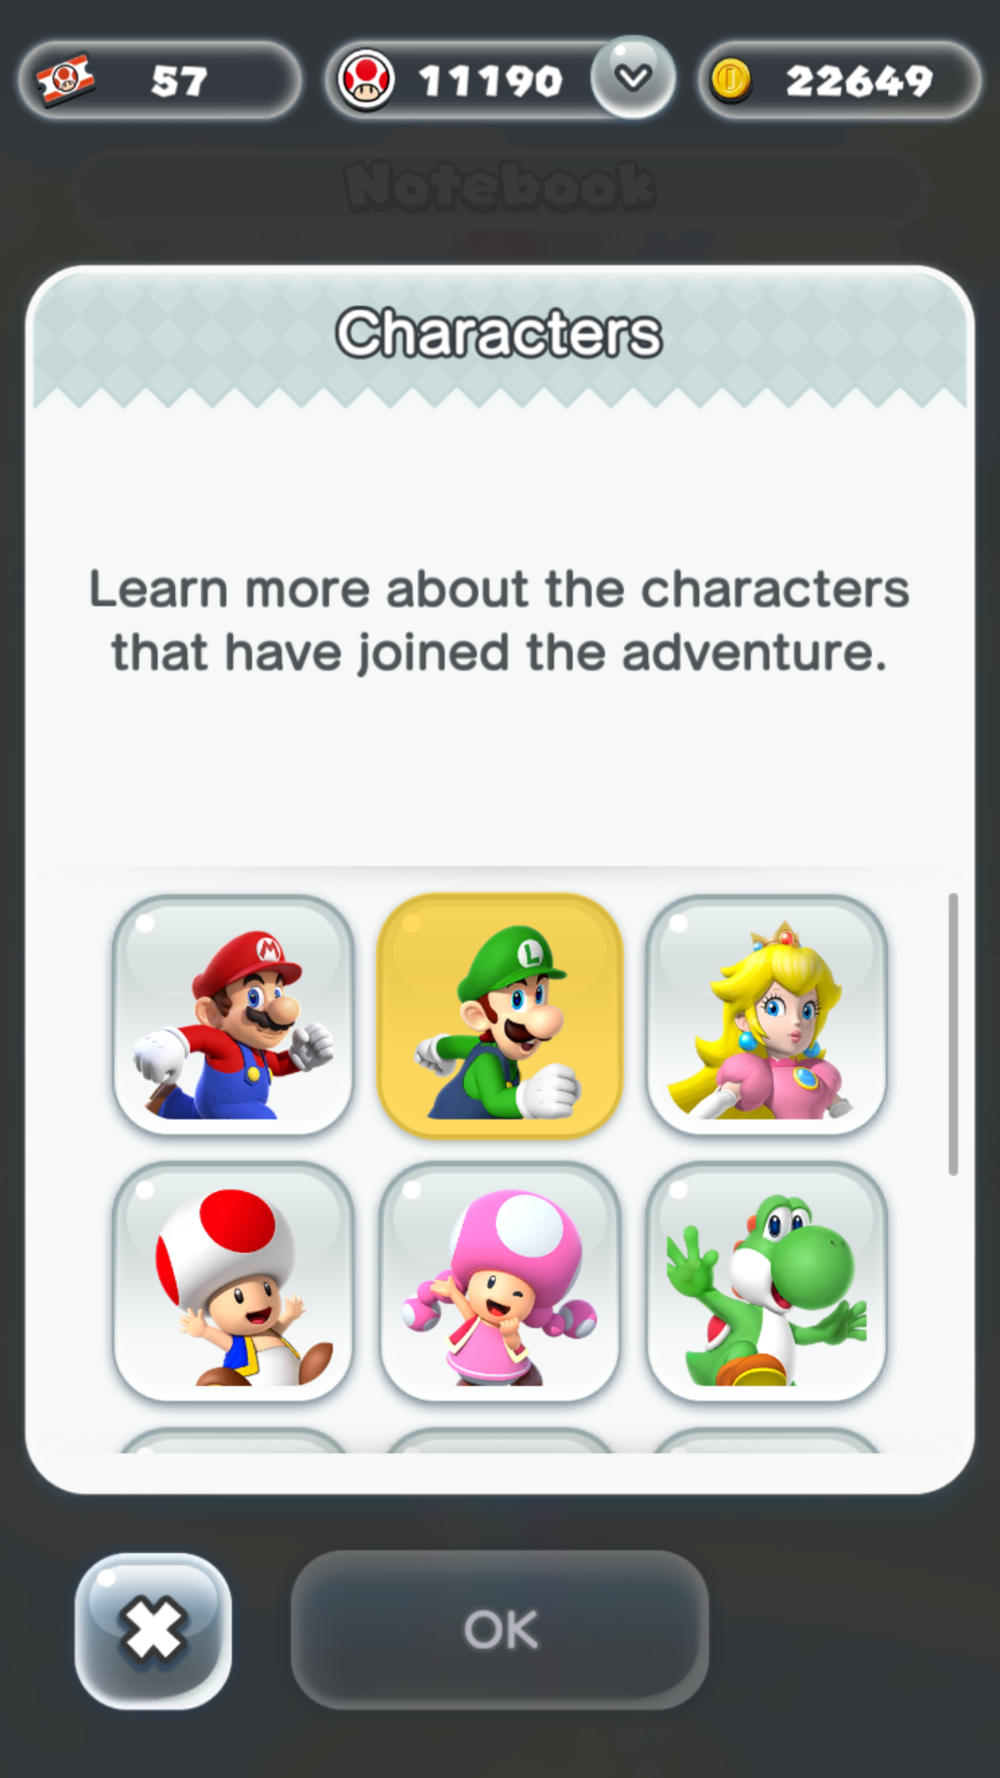 6 out of 10 characters from the game. 1st row - Mario, Luigi and Princess Peach. 2nd row - Toad, Toadette and Yoshi.